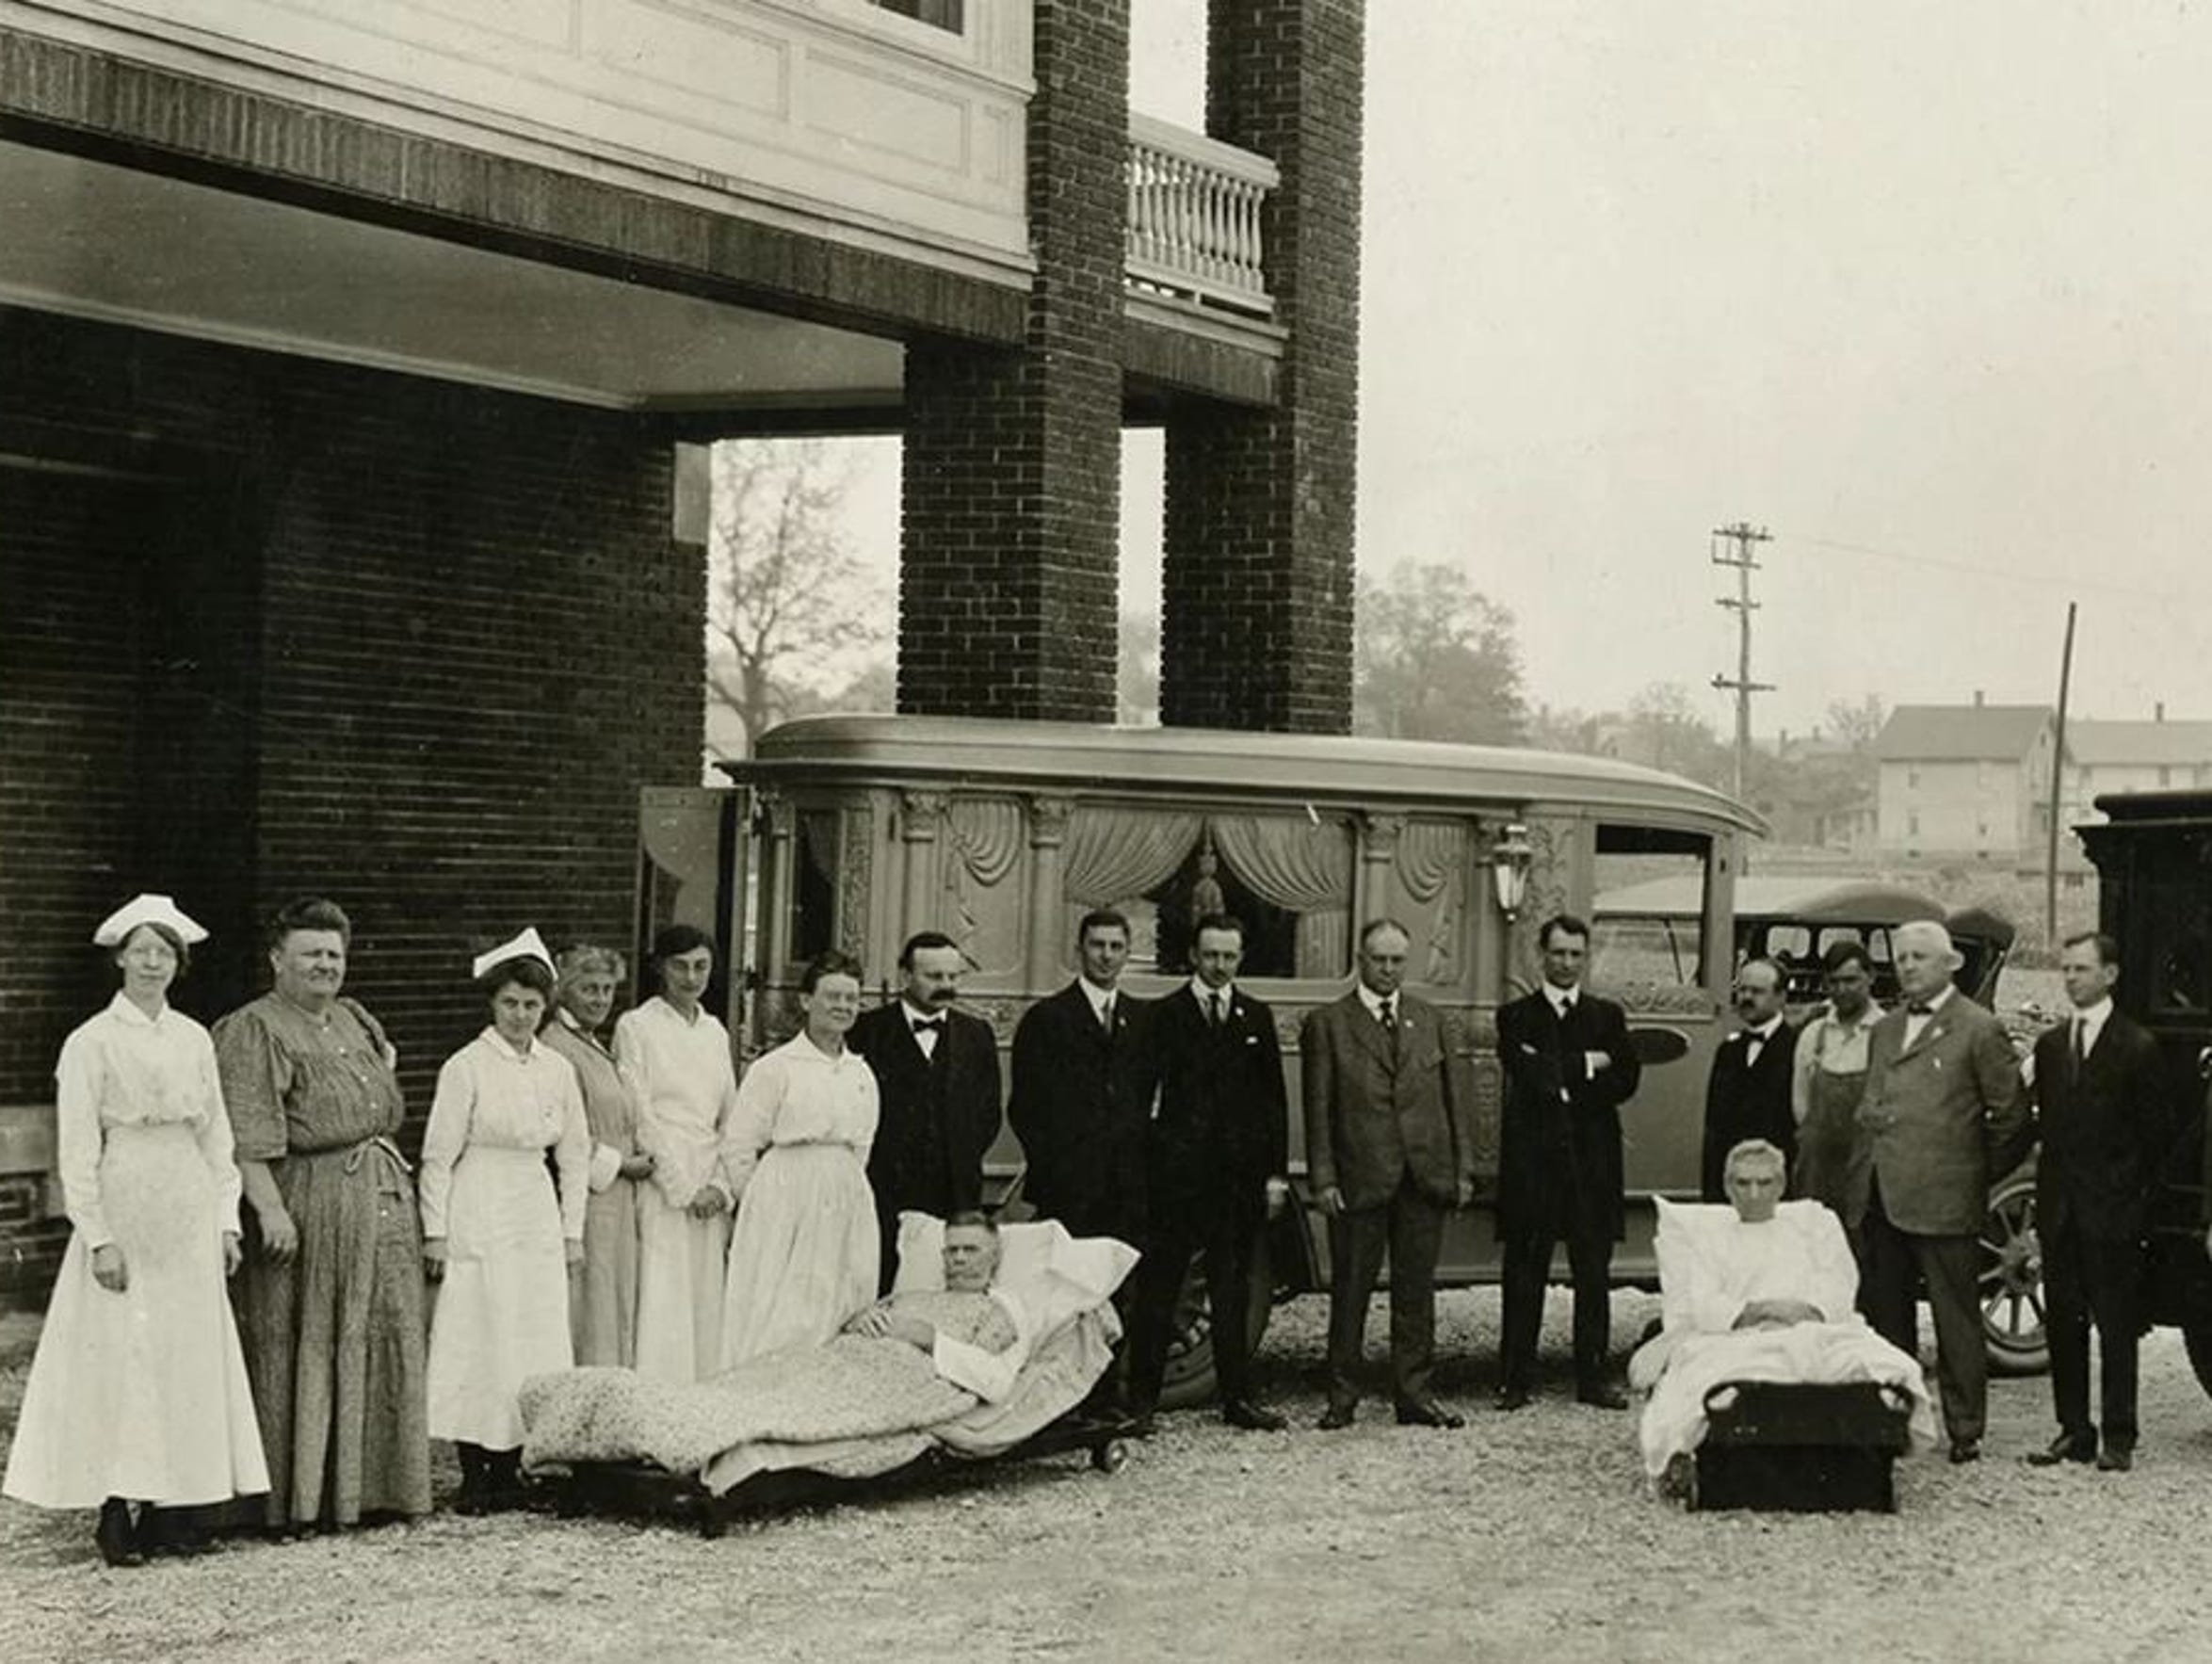 Mansfield General Hospital employees pose for a photo